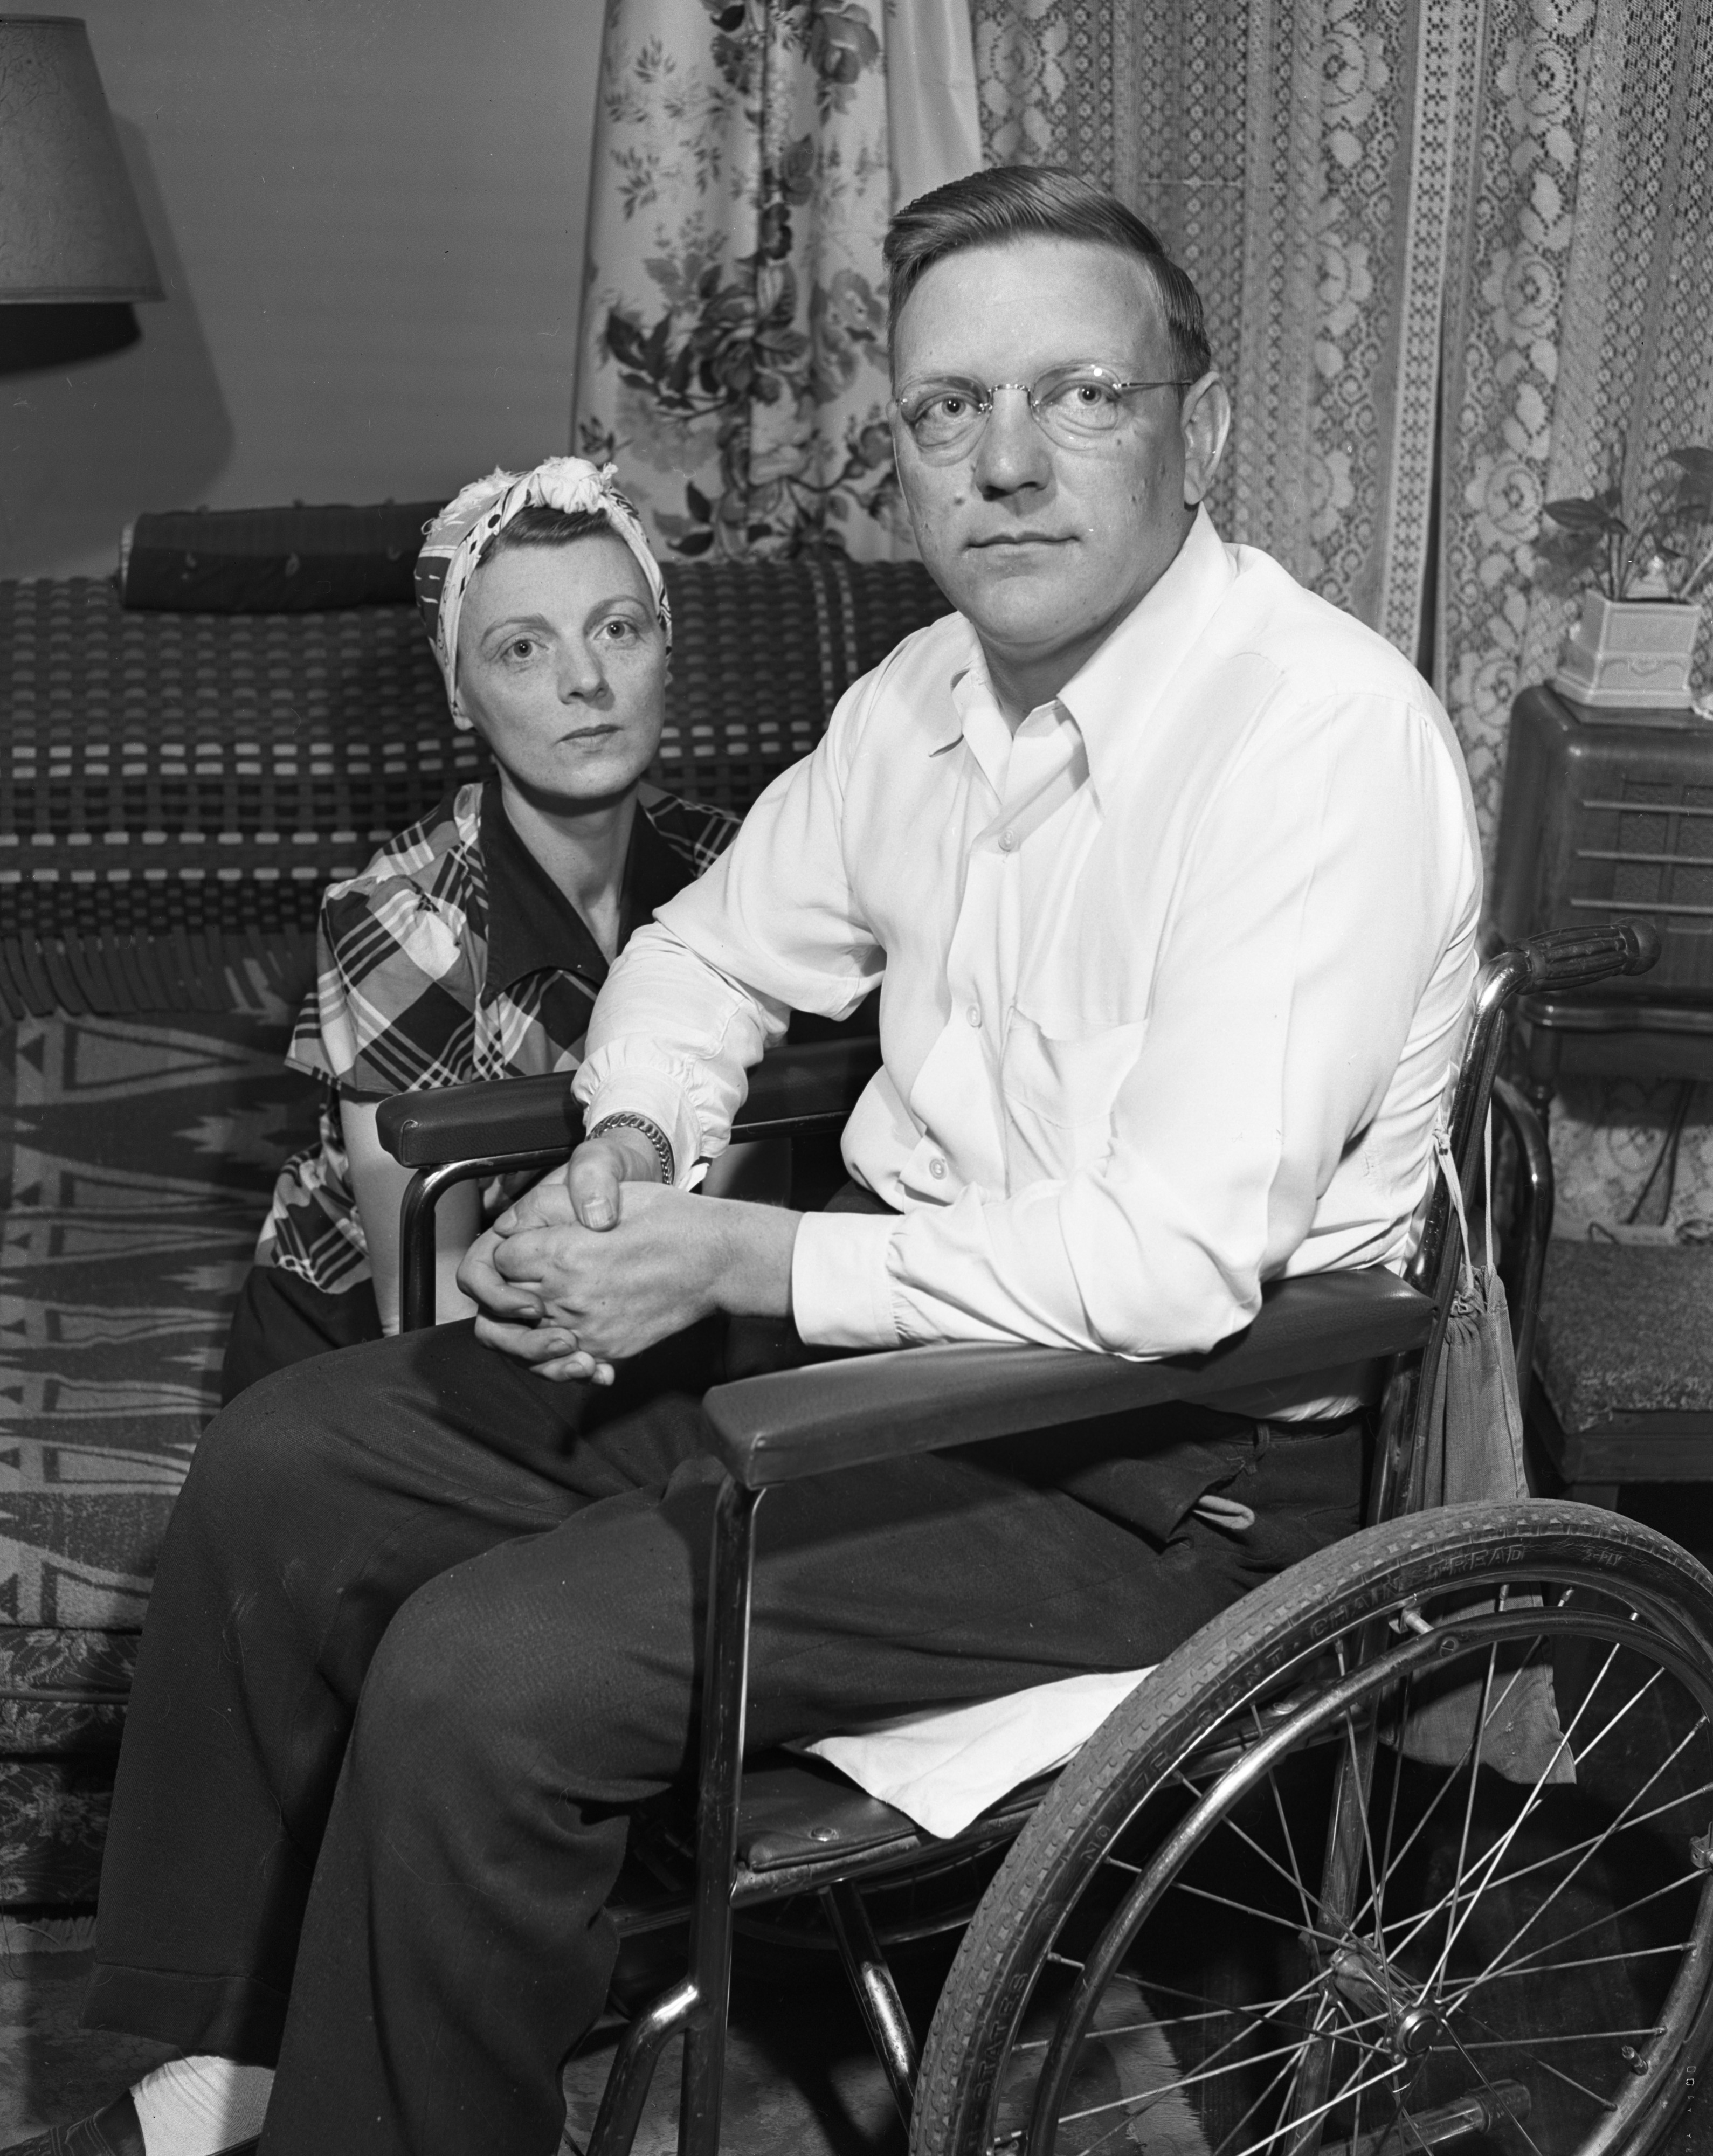 Paralyzed Veteran Robert Wagner and Wife Look for Temporary Home, April 1950 image